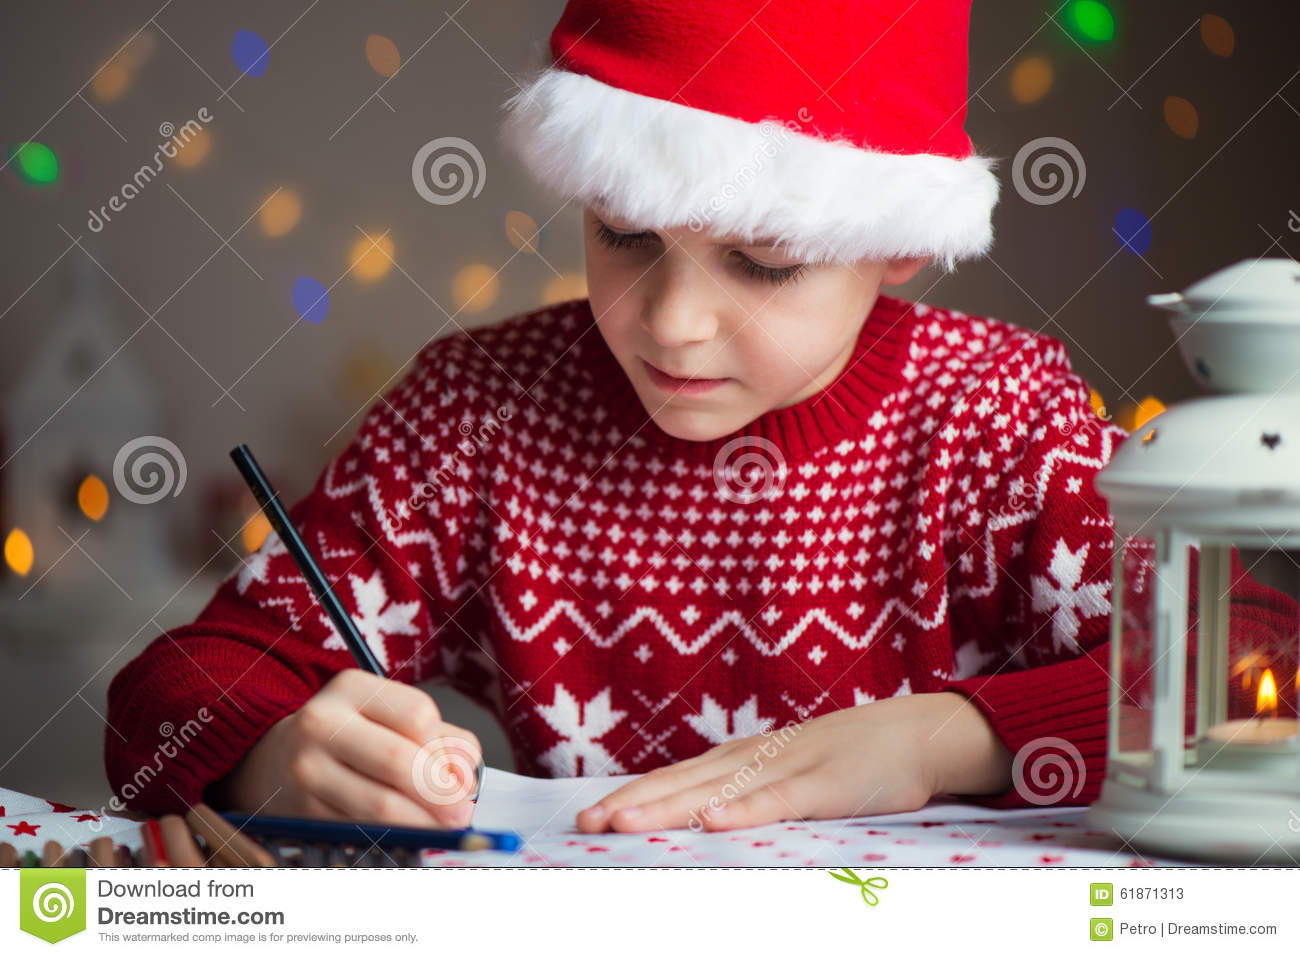 christmas child writing letter to santa claus letter in red hat